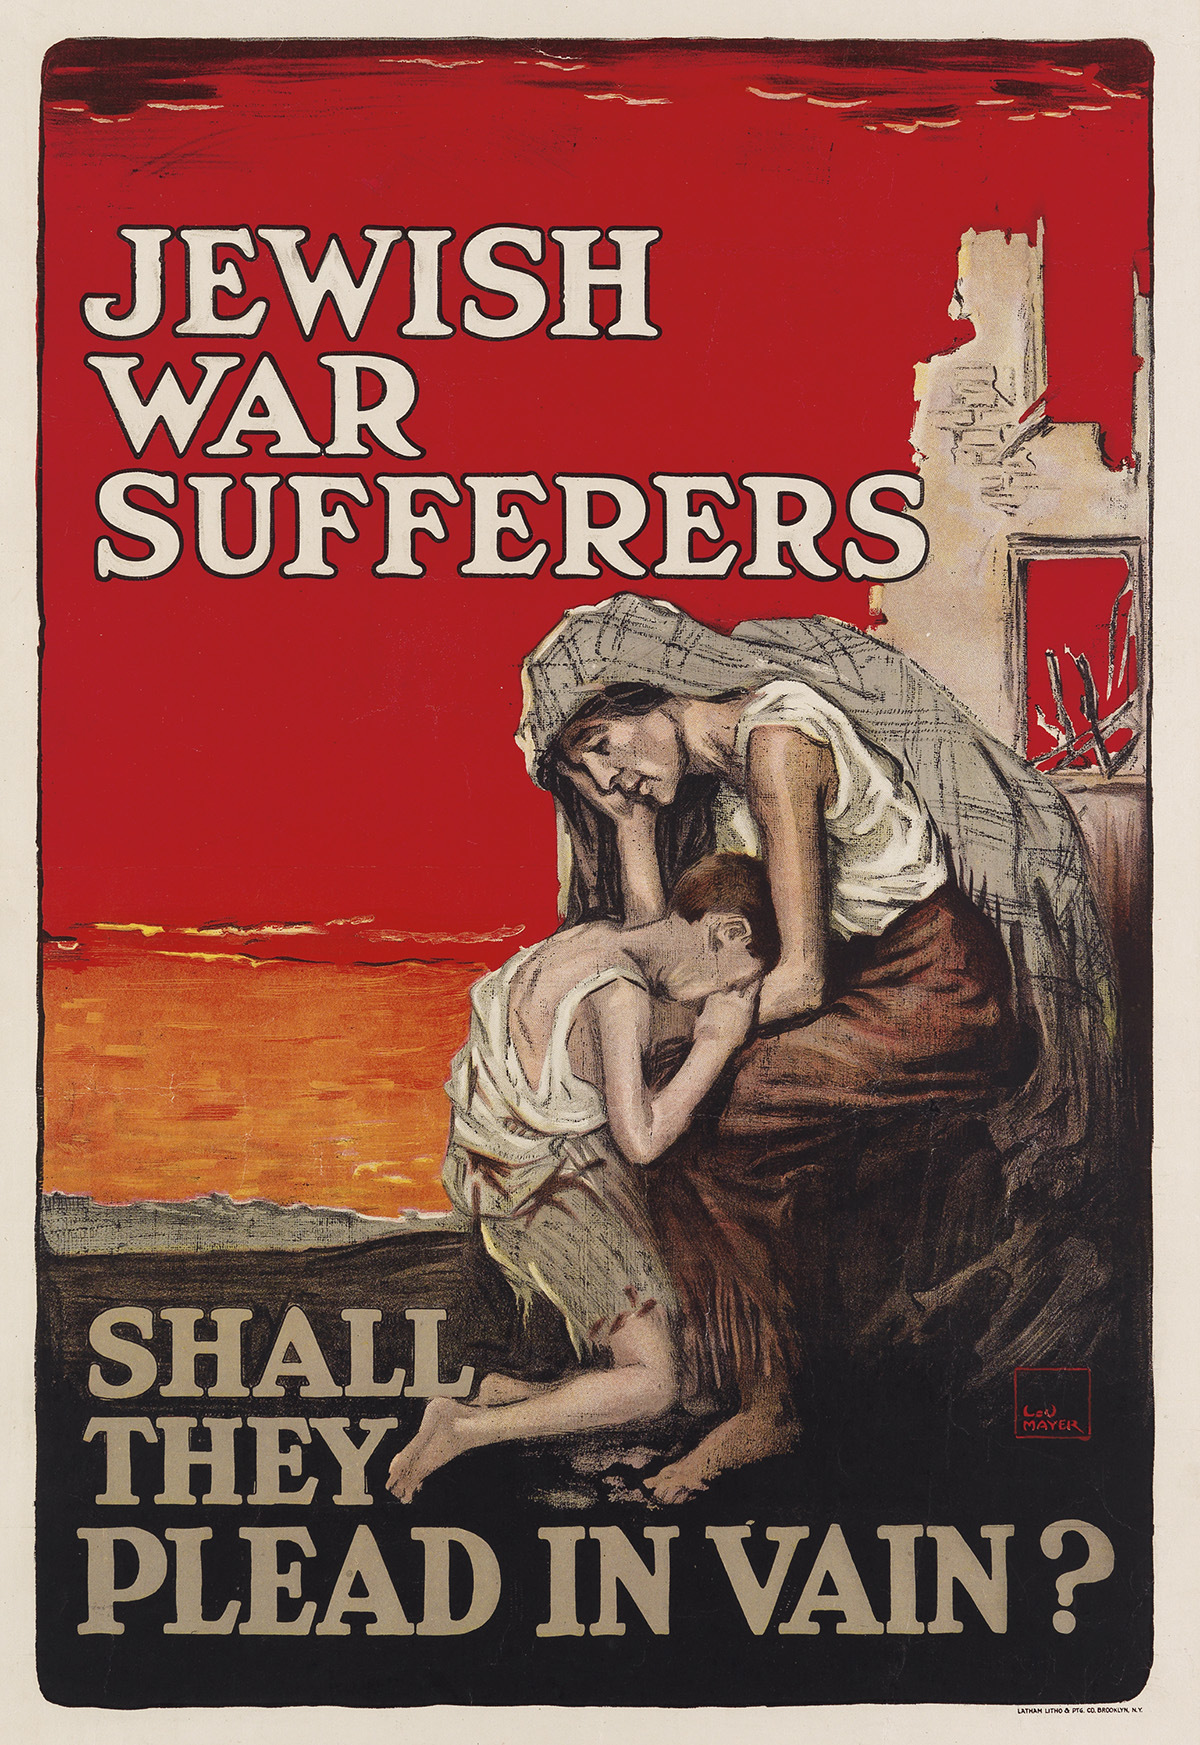 LOU MAYER (DATES UNKNOWN). JEWISH WAR SUFFERERS / SHALL THEY PLEAD IN VAIN? Circa 1917. 30x20 inches, 76x52 cm.